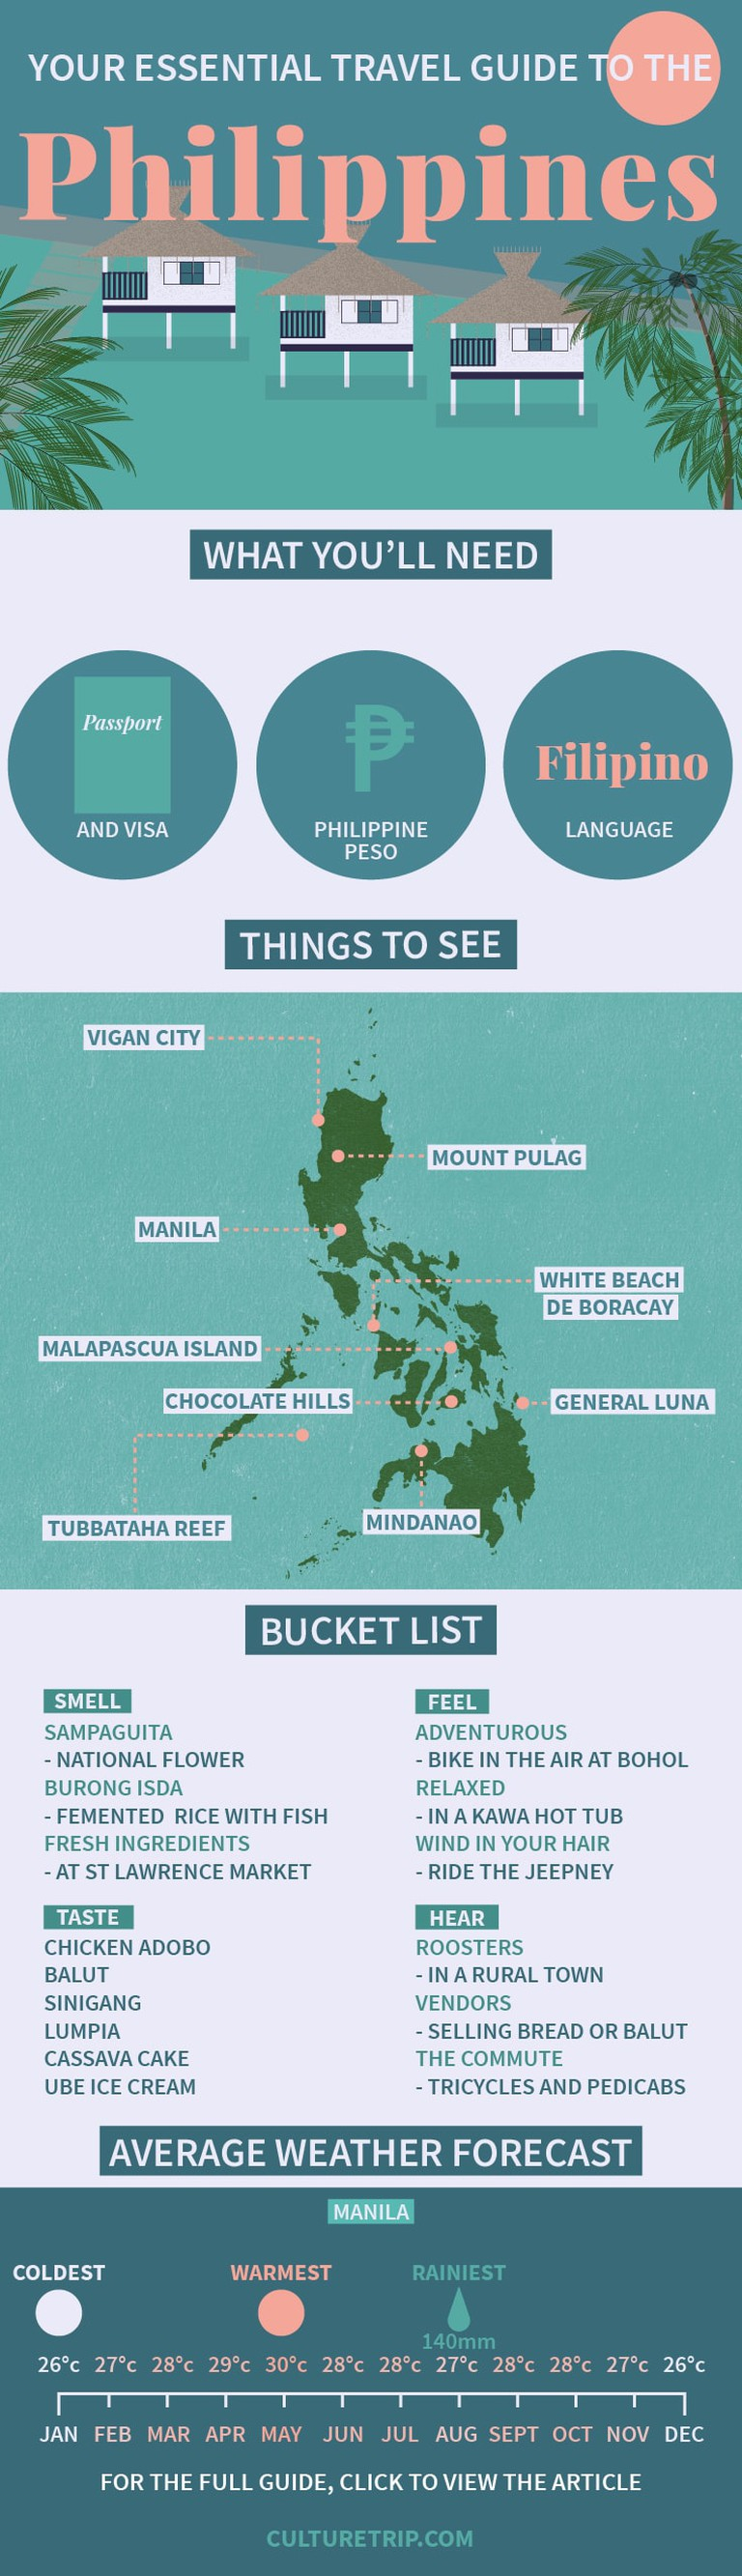 A travel guide for planning your trip to Philippines.